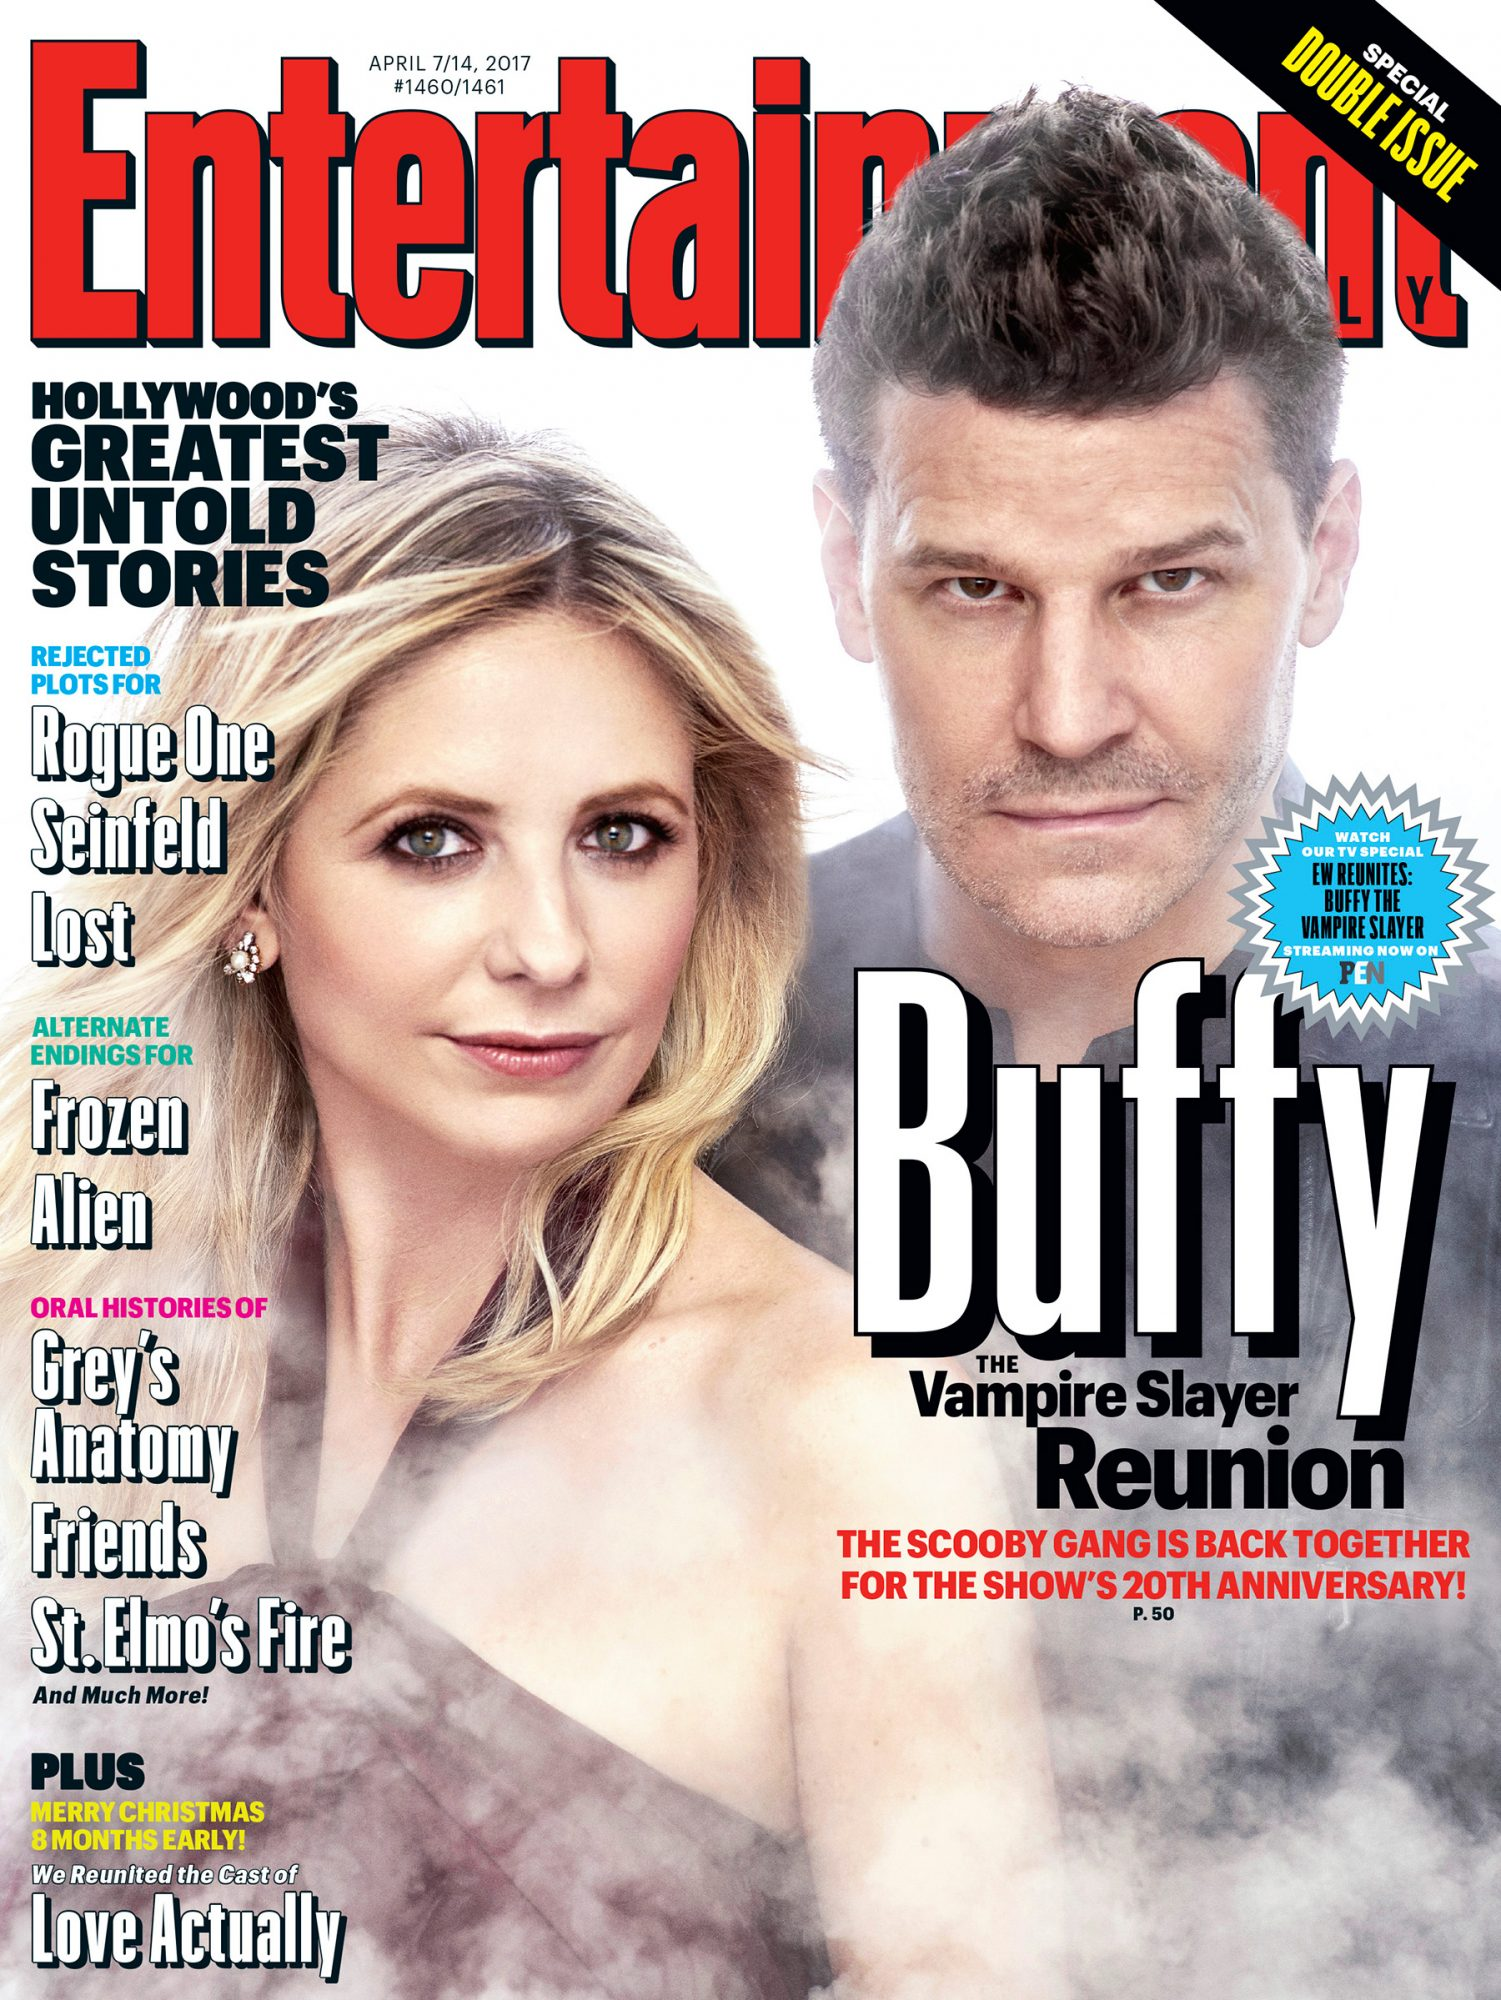 The Buffy Cover of EW